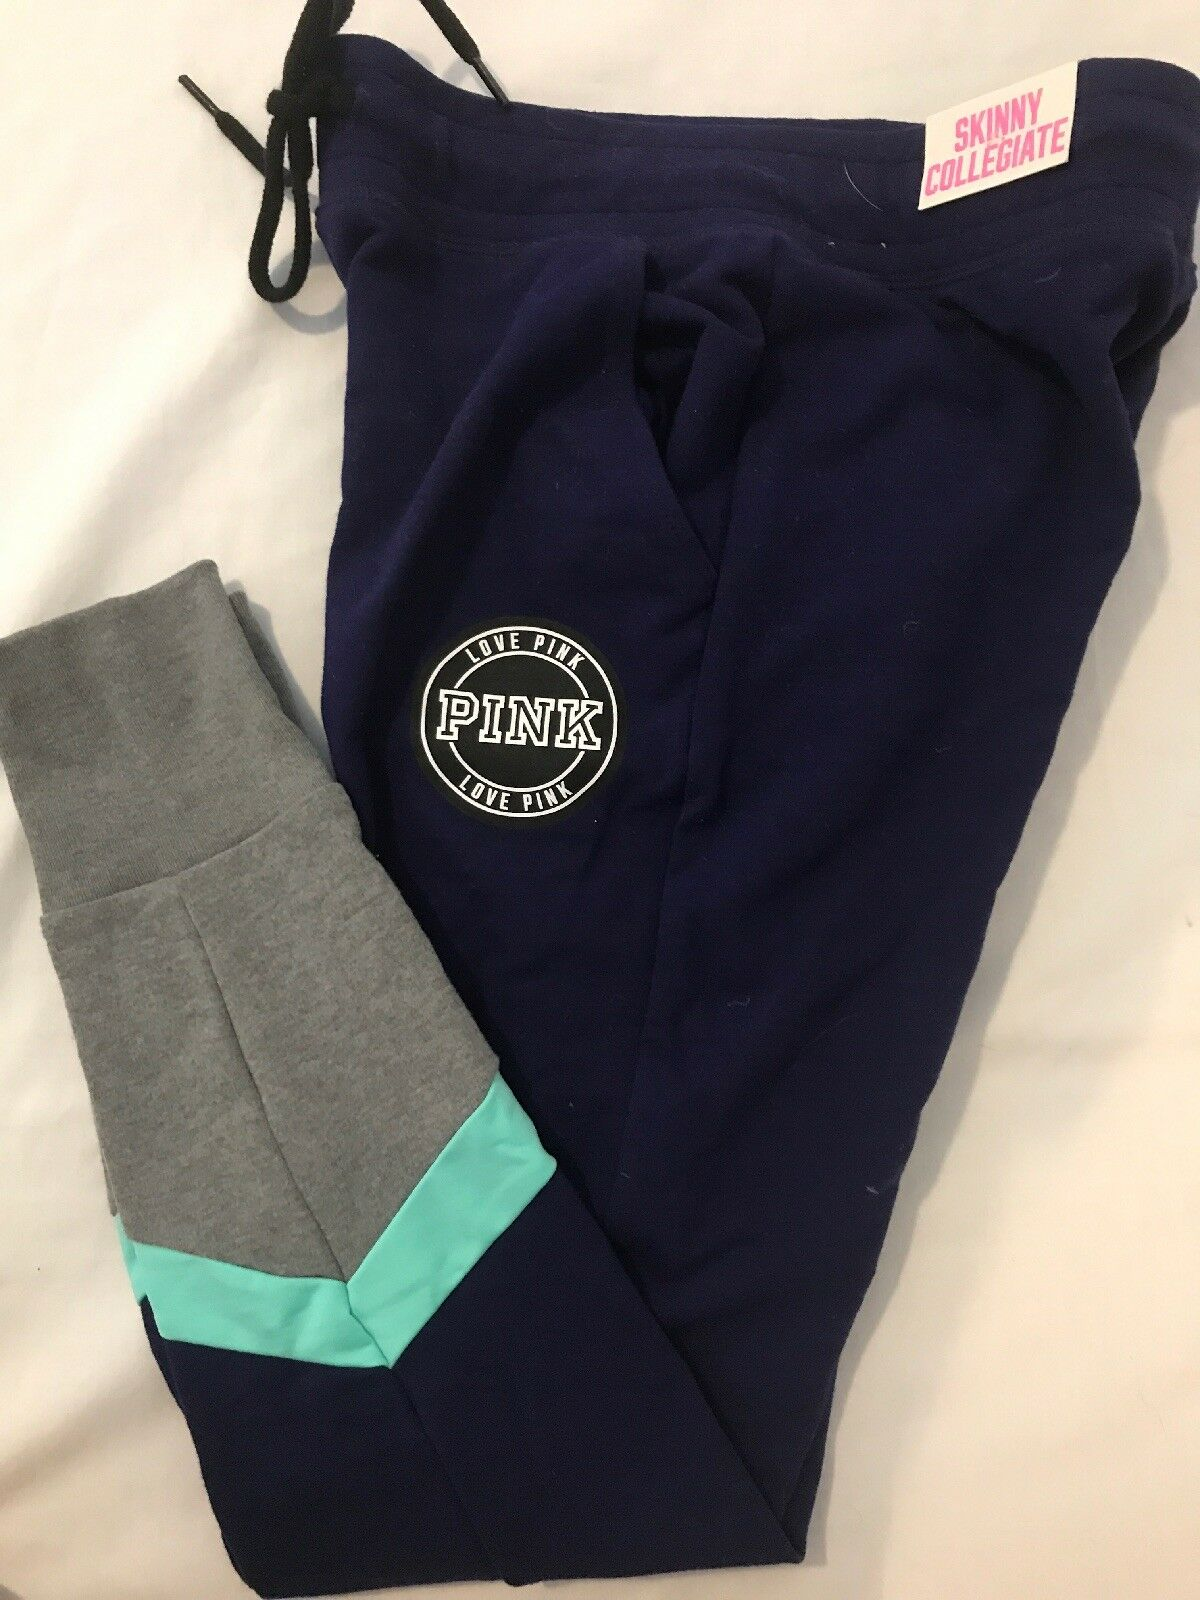 NWT Victoria's Secret Pink Skinny Collegiate Sweat Pants XS